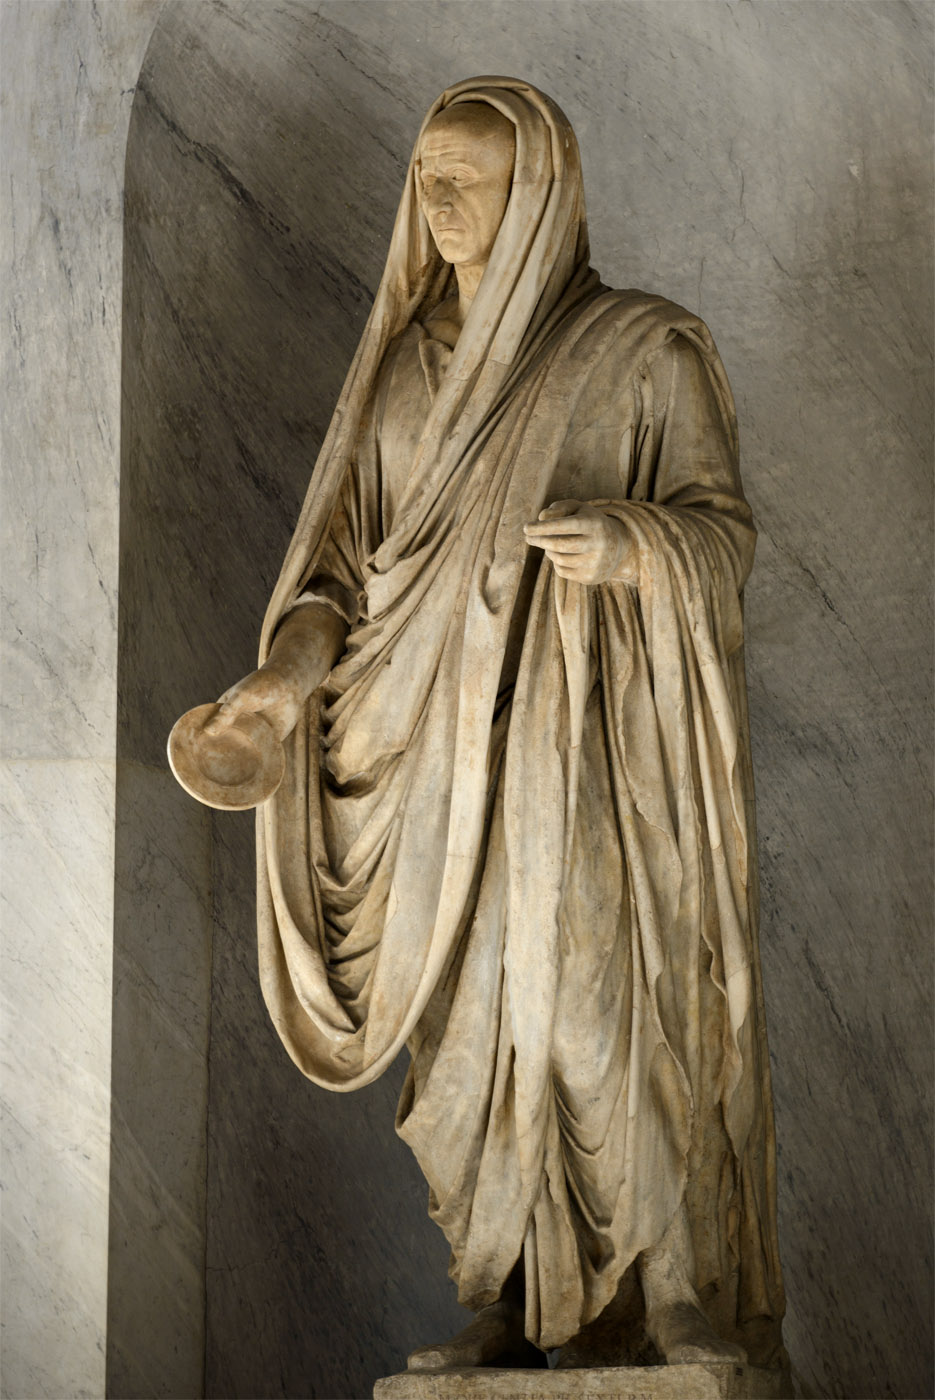 A portrait of a Roman in toga (with a head from a different statue). Marble. 130—140 CE. Head: 30—20 BCE. Inv. No. 2355. Rome, Vatican Museums, Pius-Clementine Museum, Room of the Biga, 11